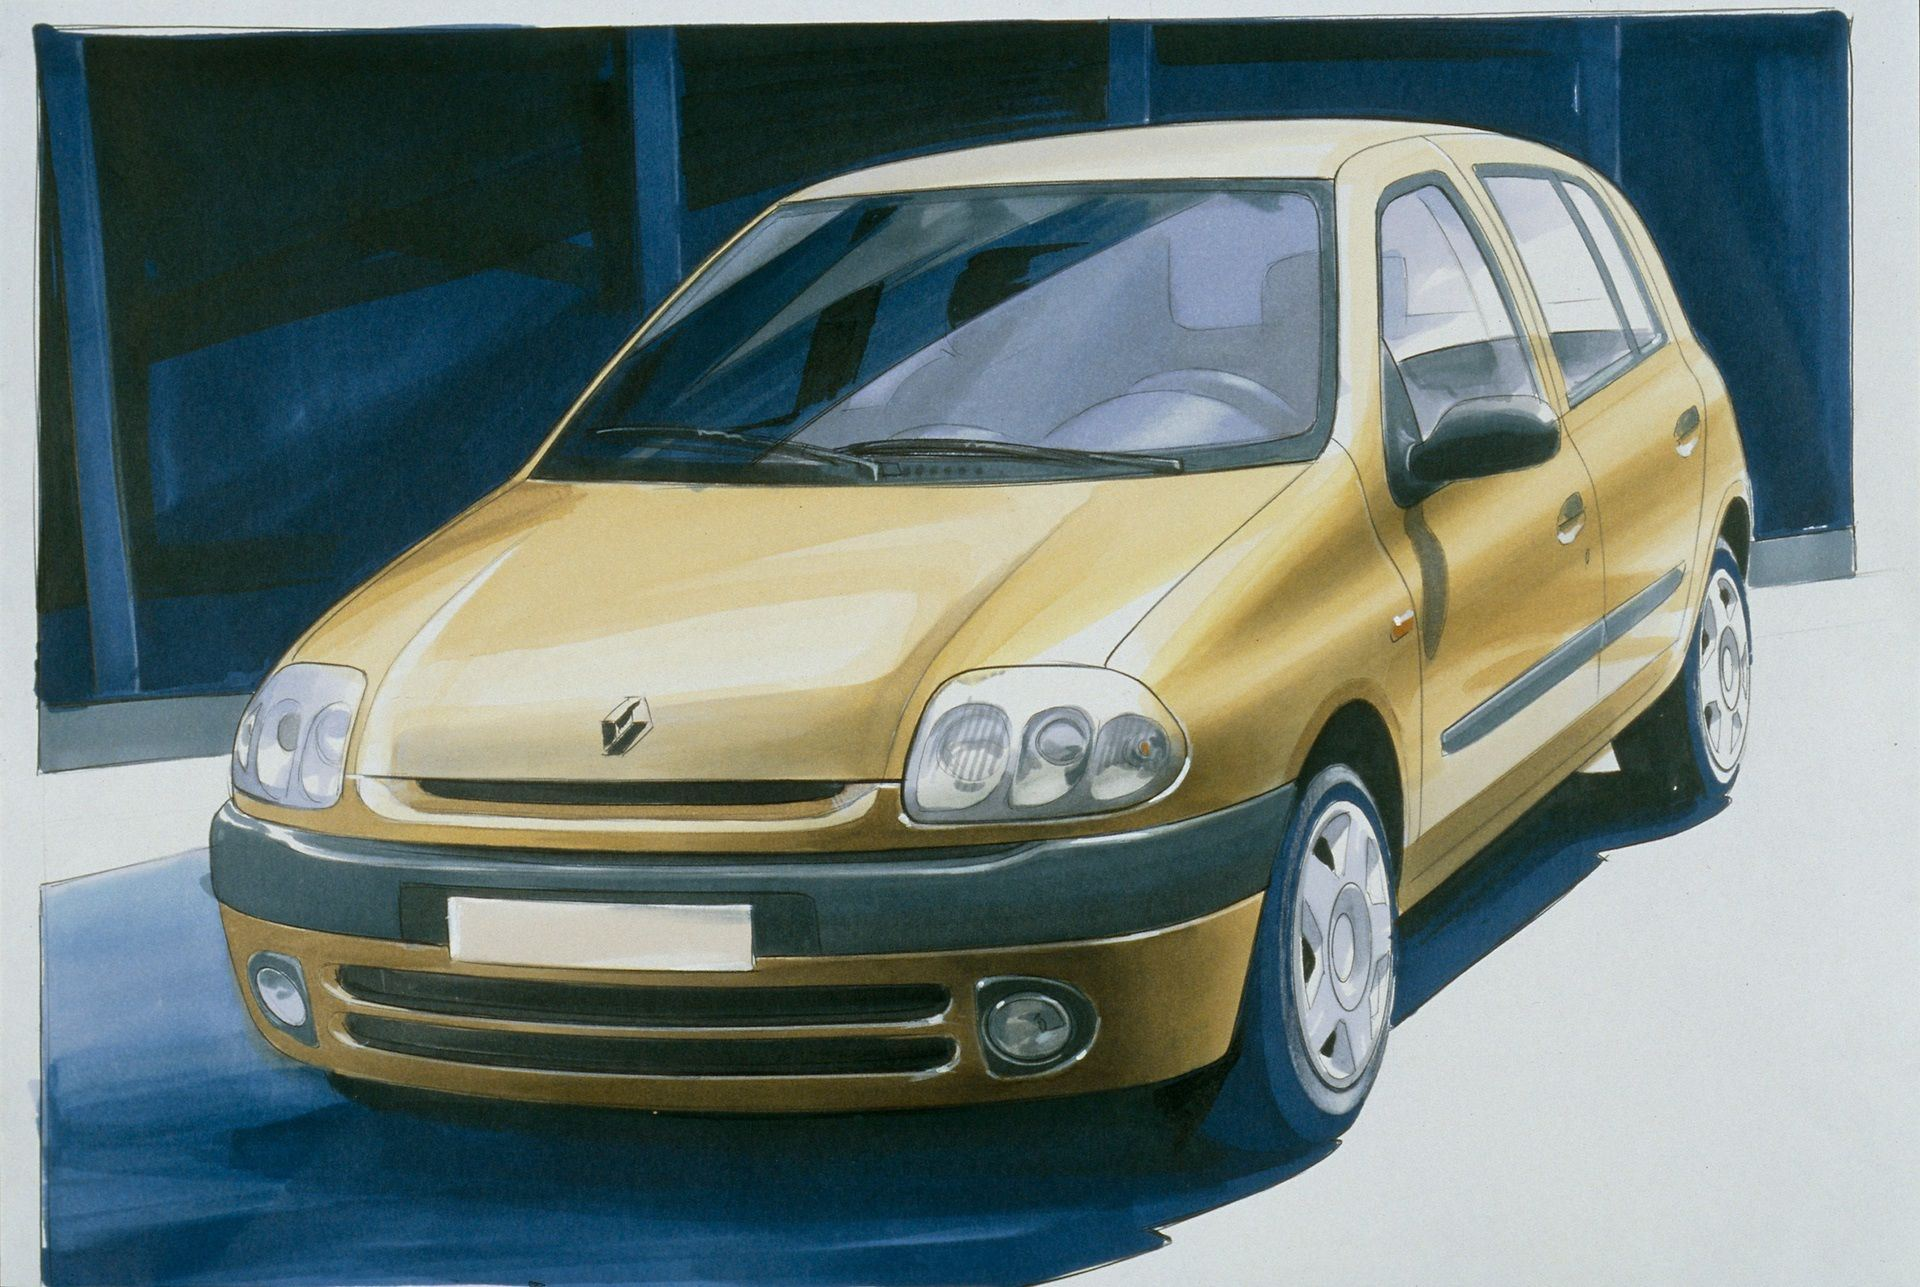 2020-30-years-of-Renault-CLIO-Renault-CLIO-2-1998-2005